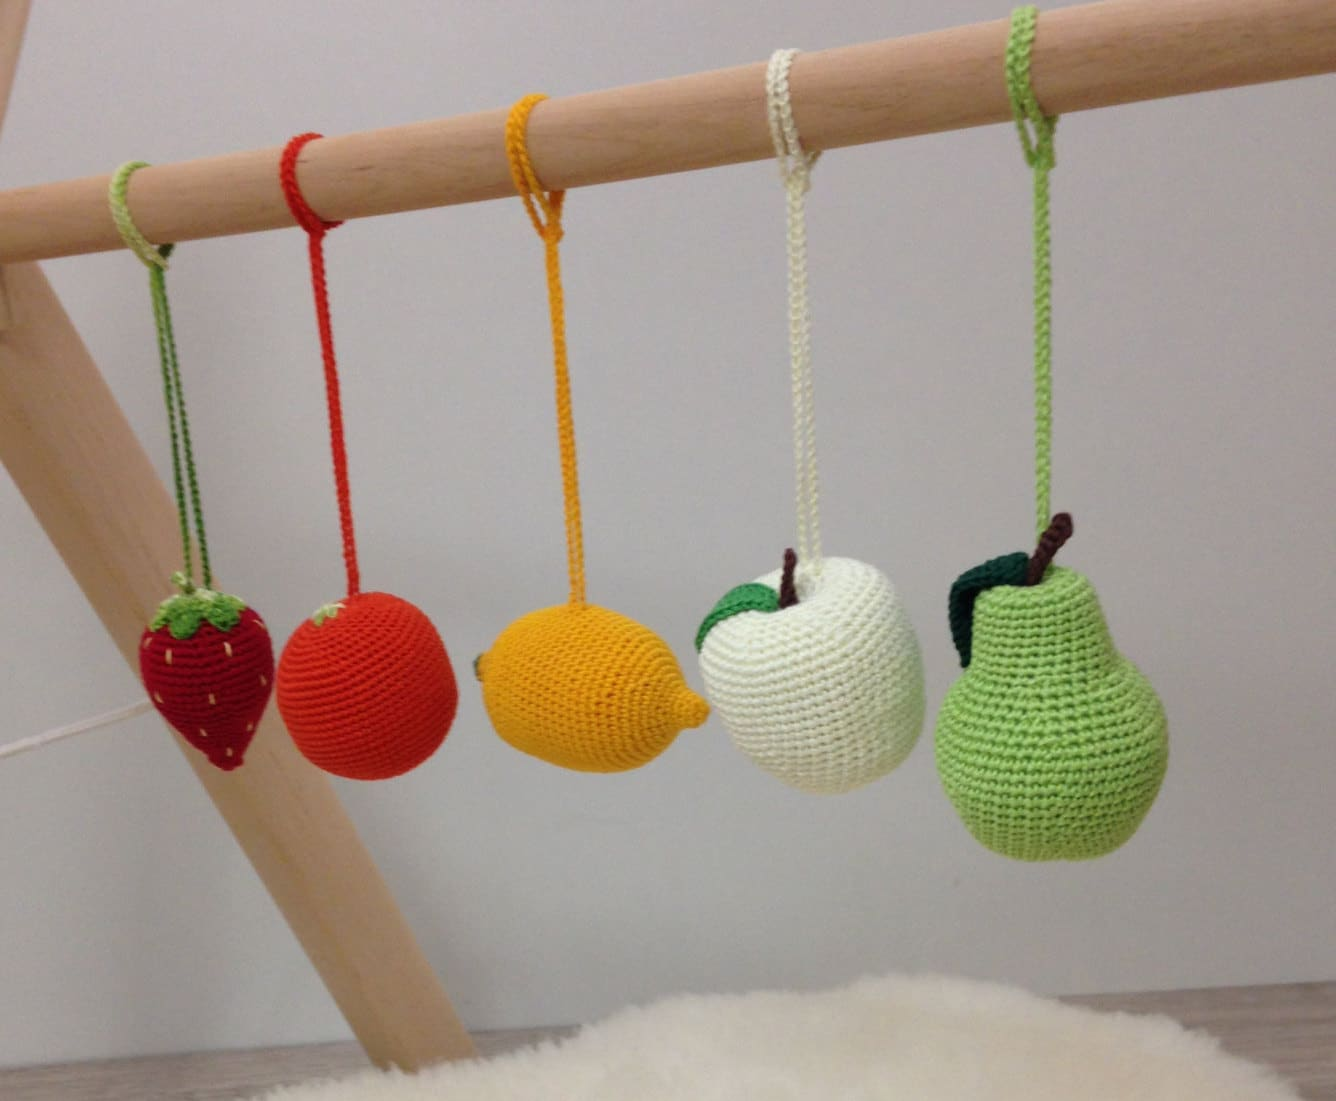 Crib gym for babies - Baby Rattles Set Of 5 Fruits Hanging Toys Baby Gym Toys Car Seat Toys Activity Center Toy Crochet Fruits